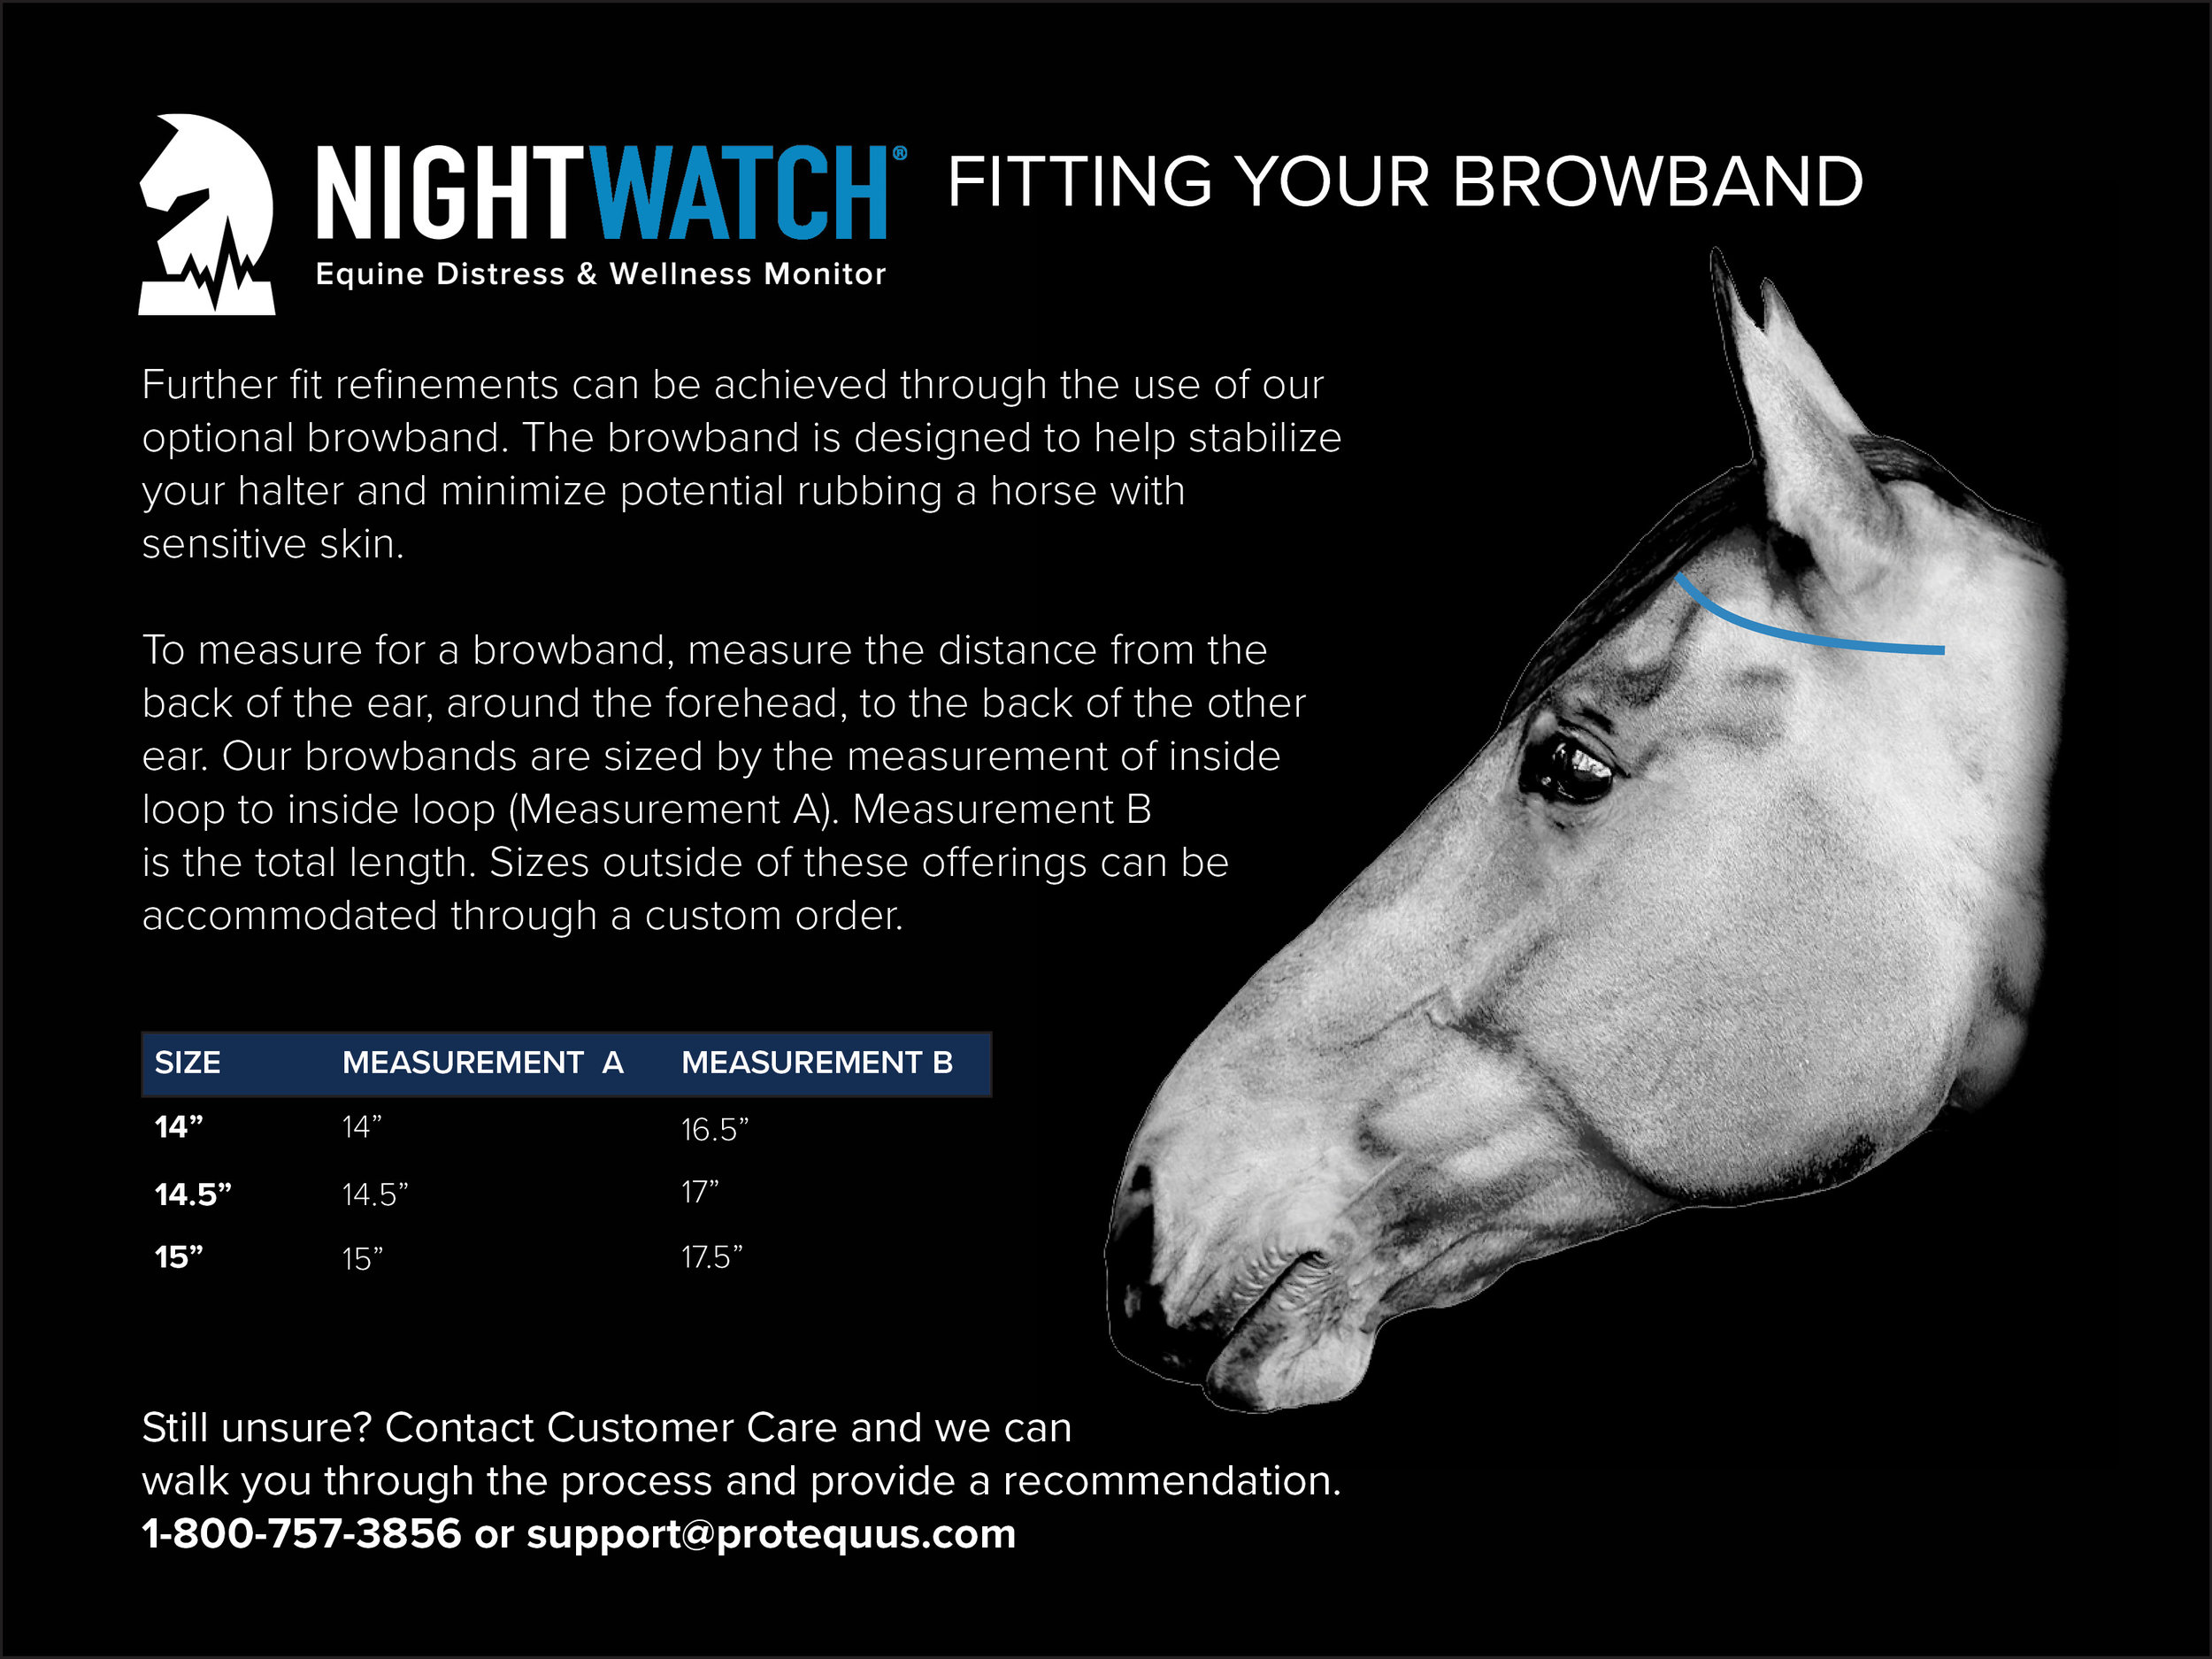 NIGHTWATCH® Browband Guide